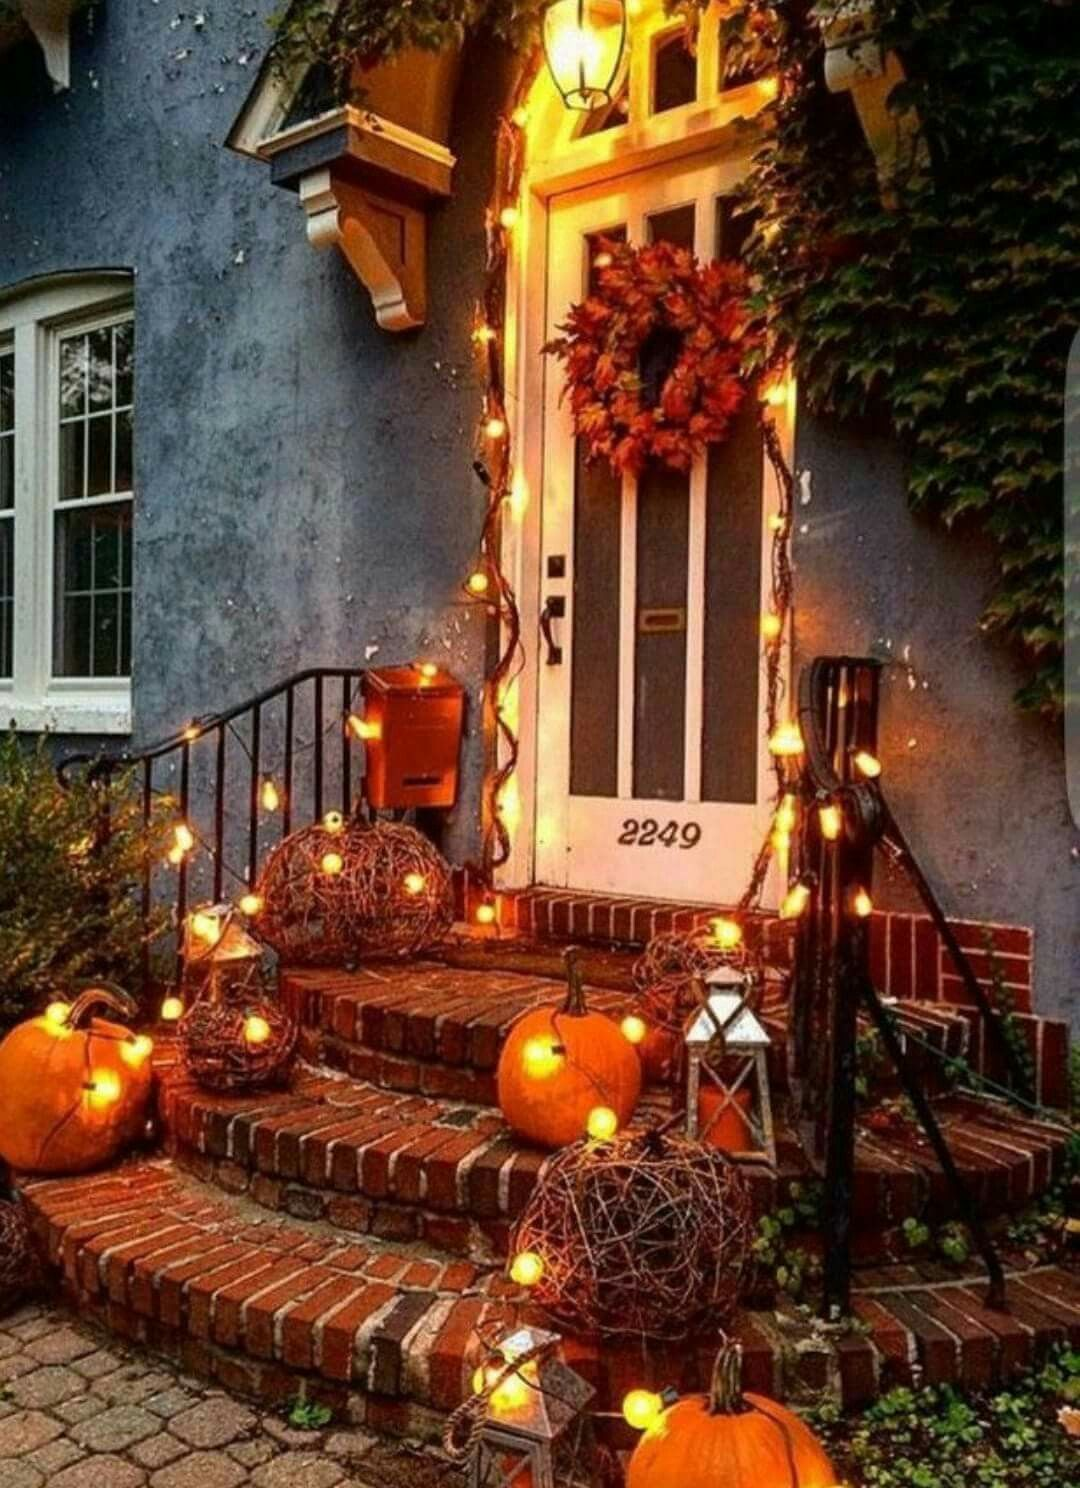 Image shows front door porch with pumpkins and Christmas lights all lite up.